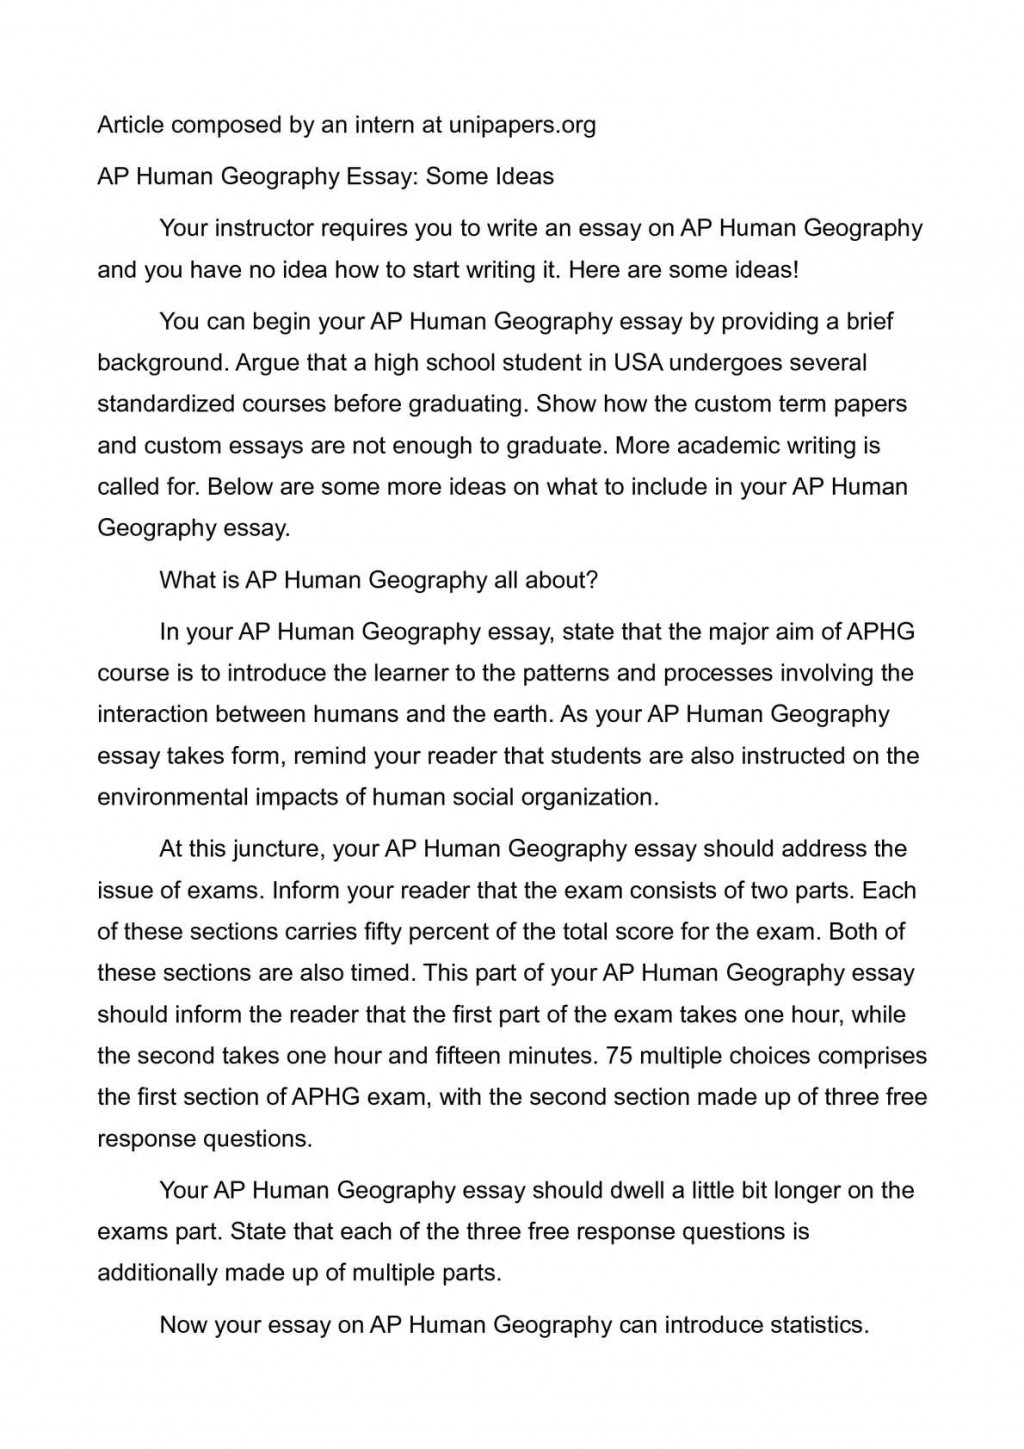 006 P1 Human Geography Essays Stunning Essay Examples Ap Free Response Large